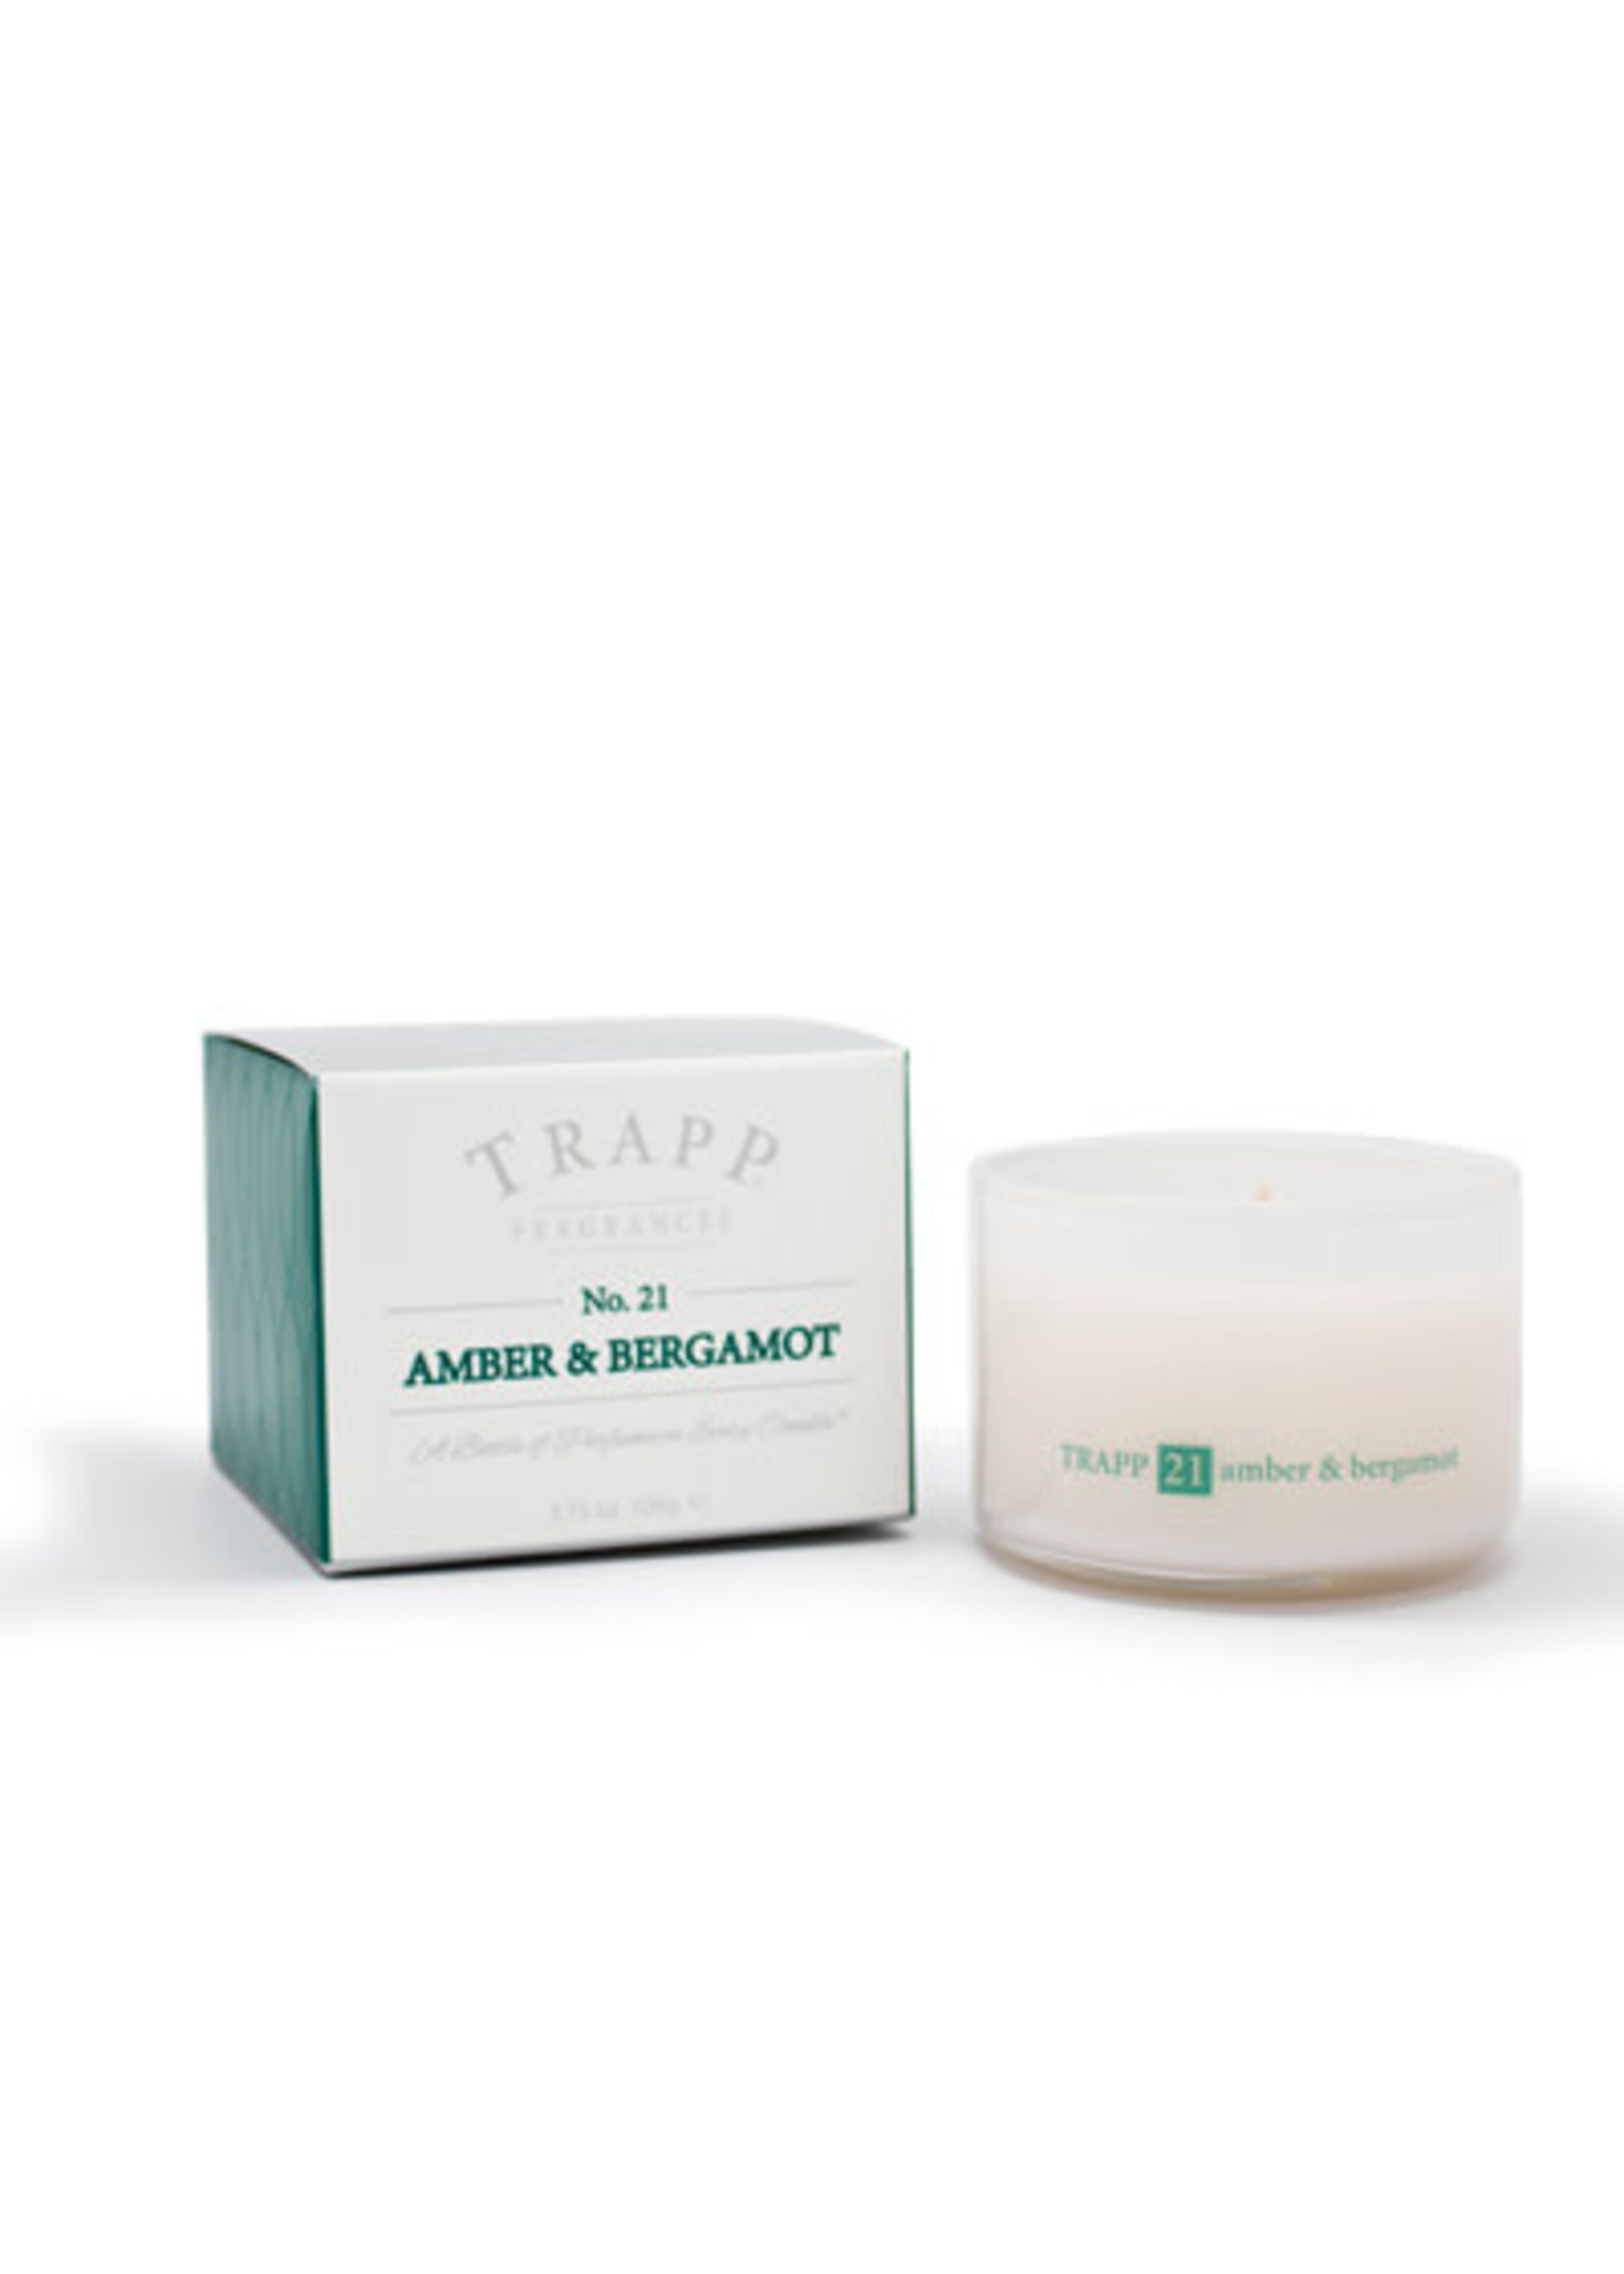 Trapp Candles Ambiance Collection - No. 21 Amber Bergamot - 3.75 oz. Poured Candle